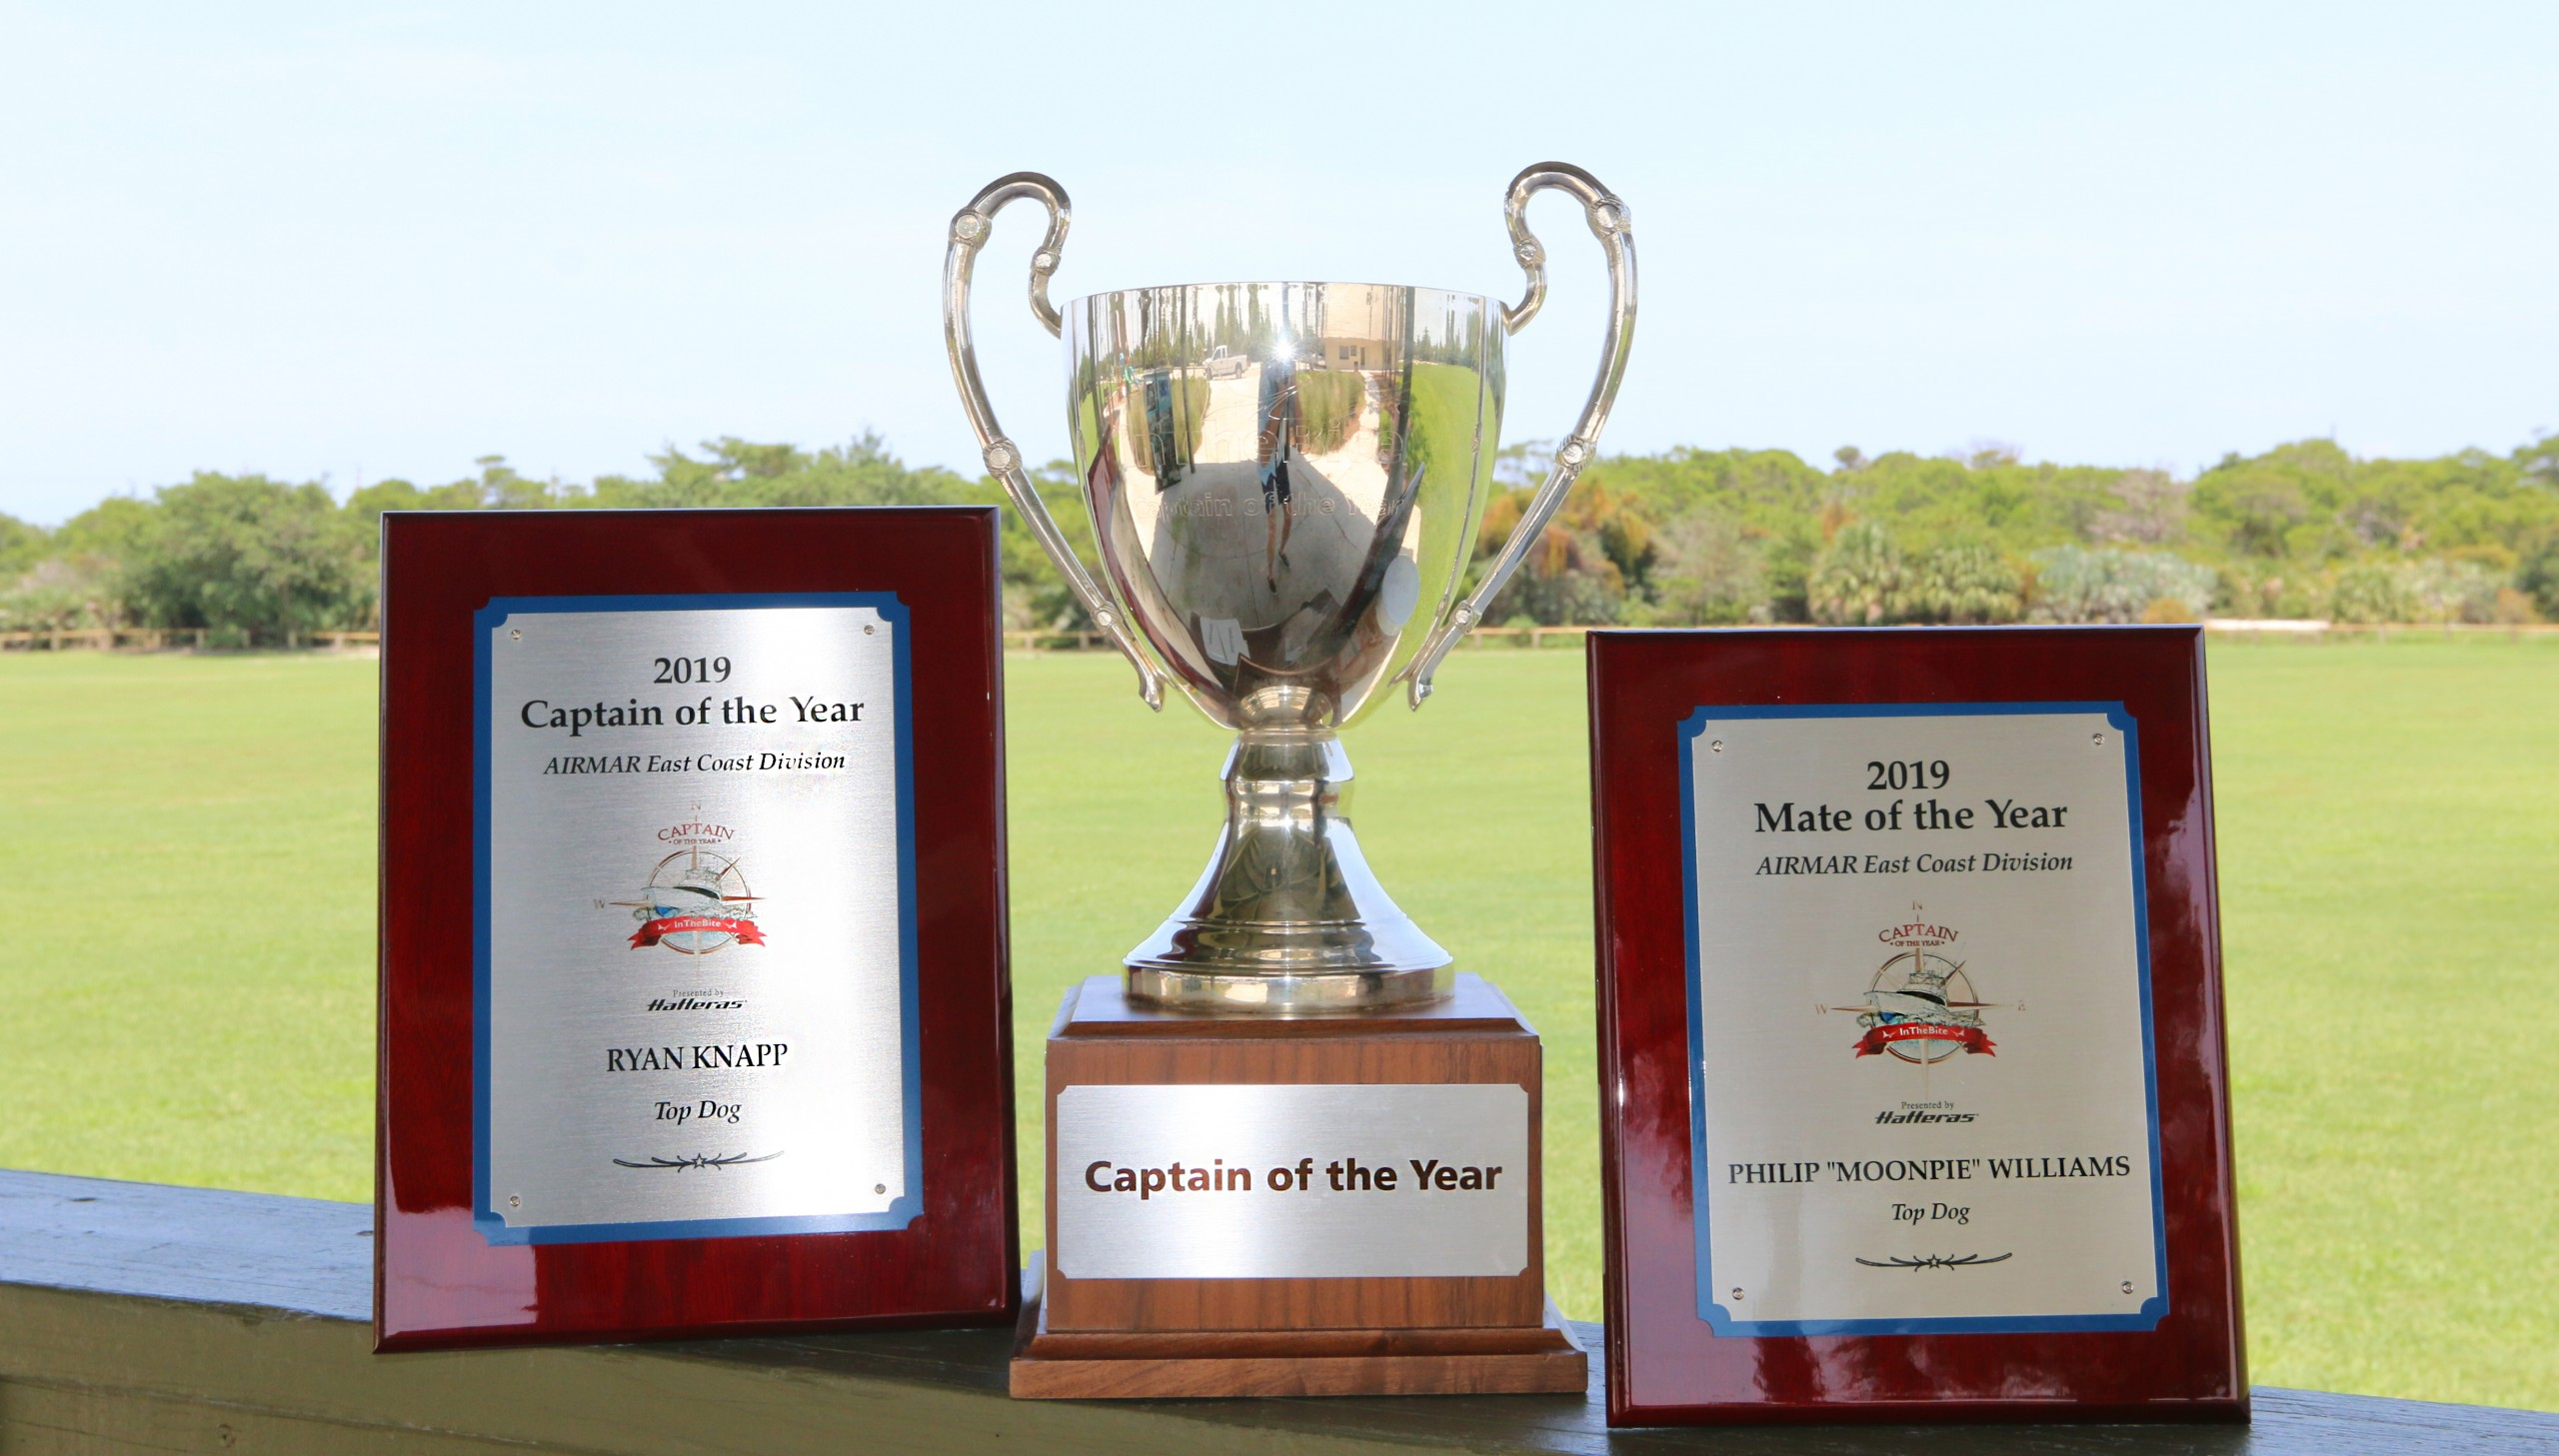 captain of the year trophy and plaques